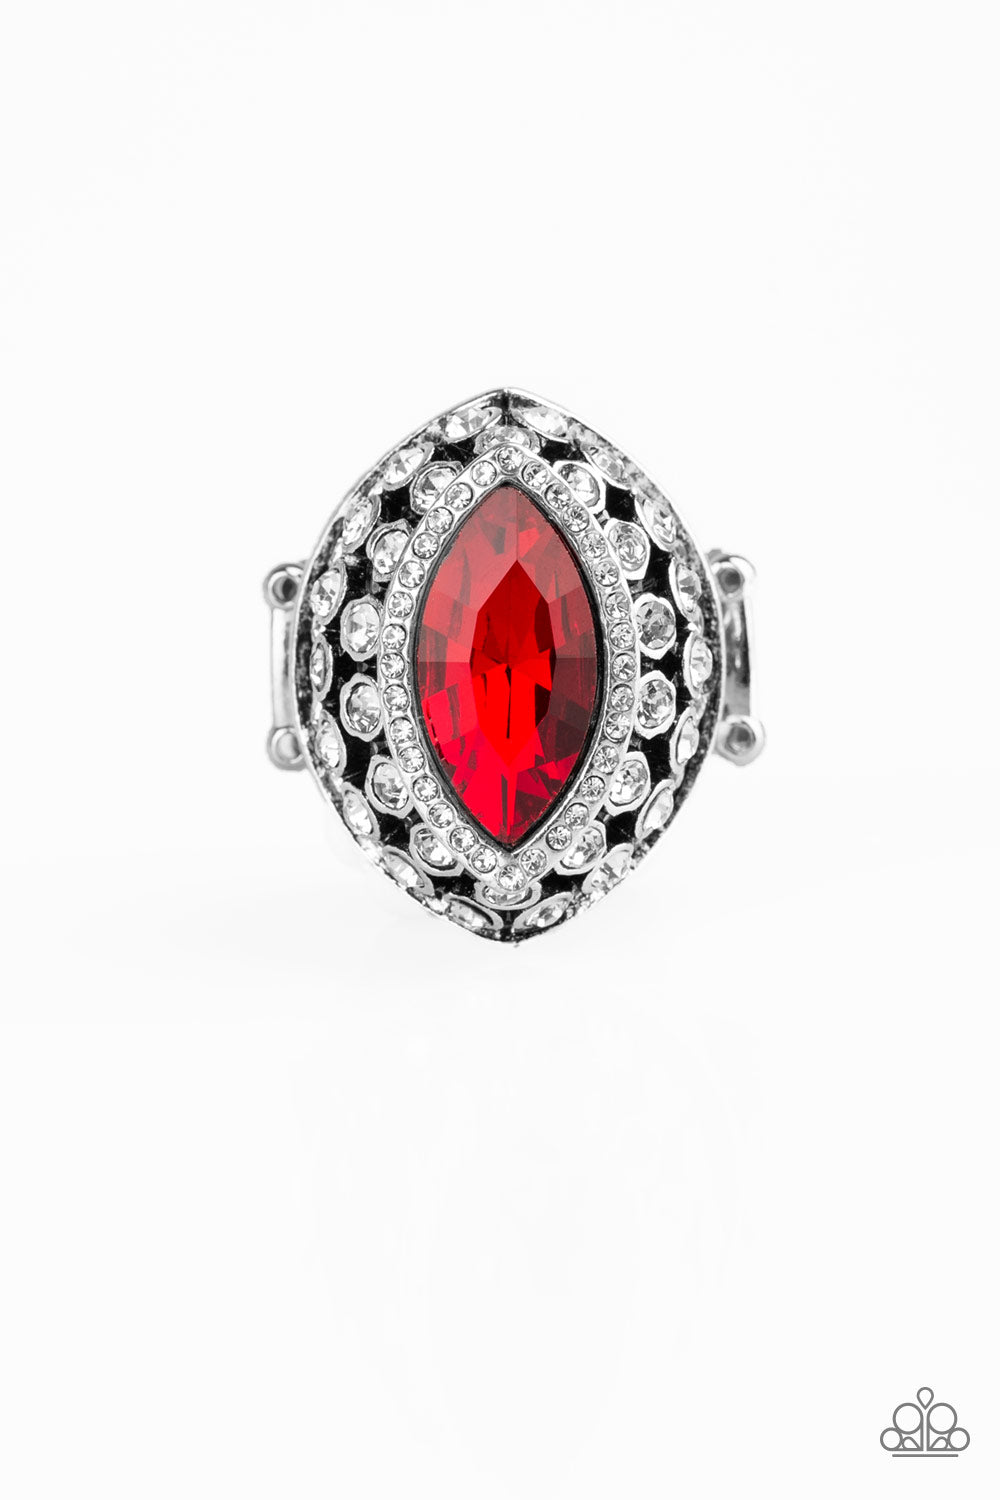 Paparazzi Accessories - Royal Radiance - Red Ring - JMJ Jewelry Collection